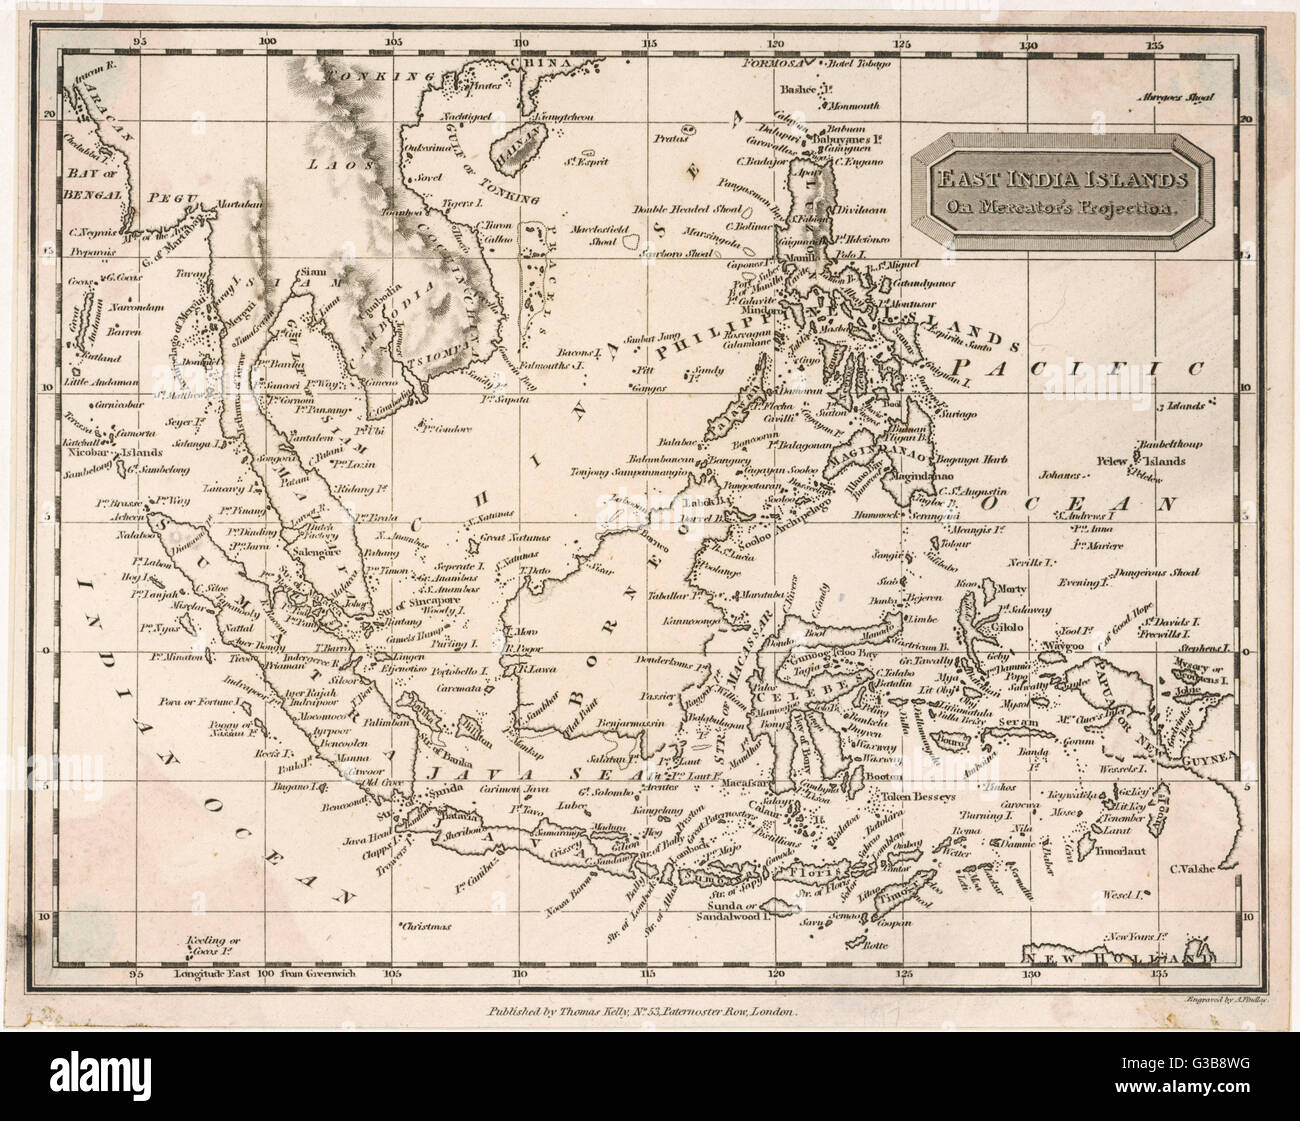 Map of the East India Islands including the Philippines the